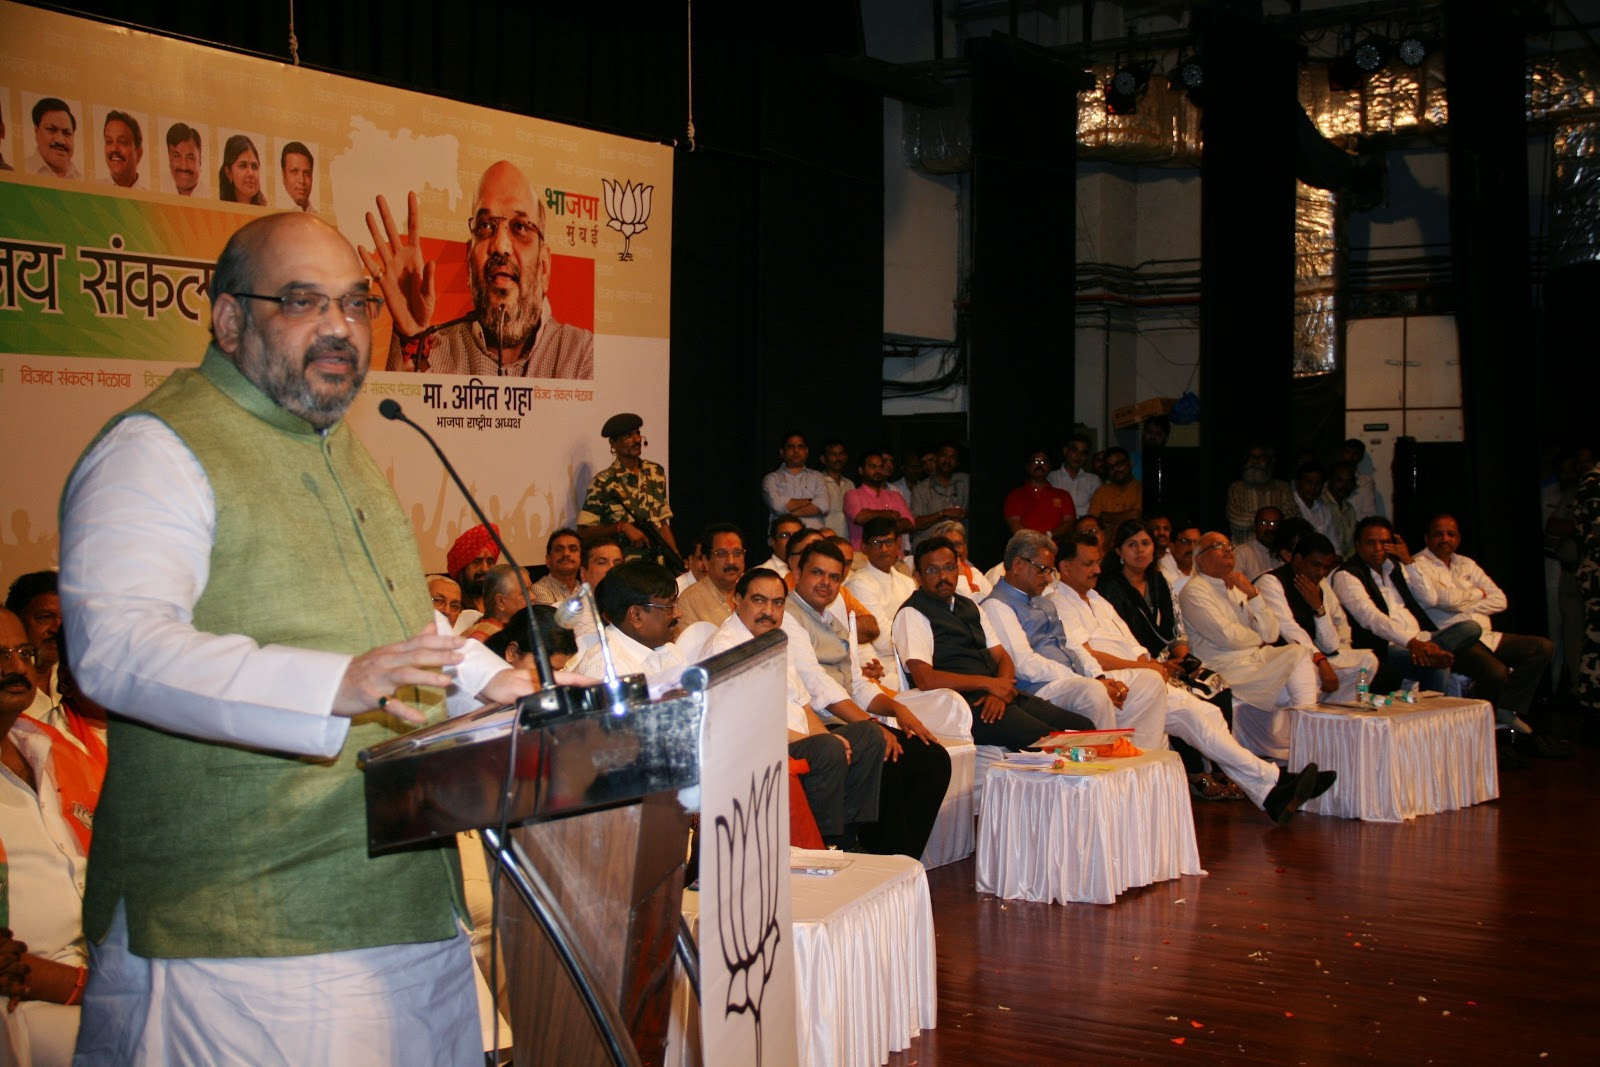 Amit Shah on his 'Mission Mumbai'